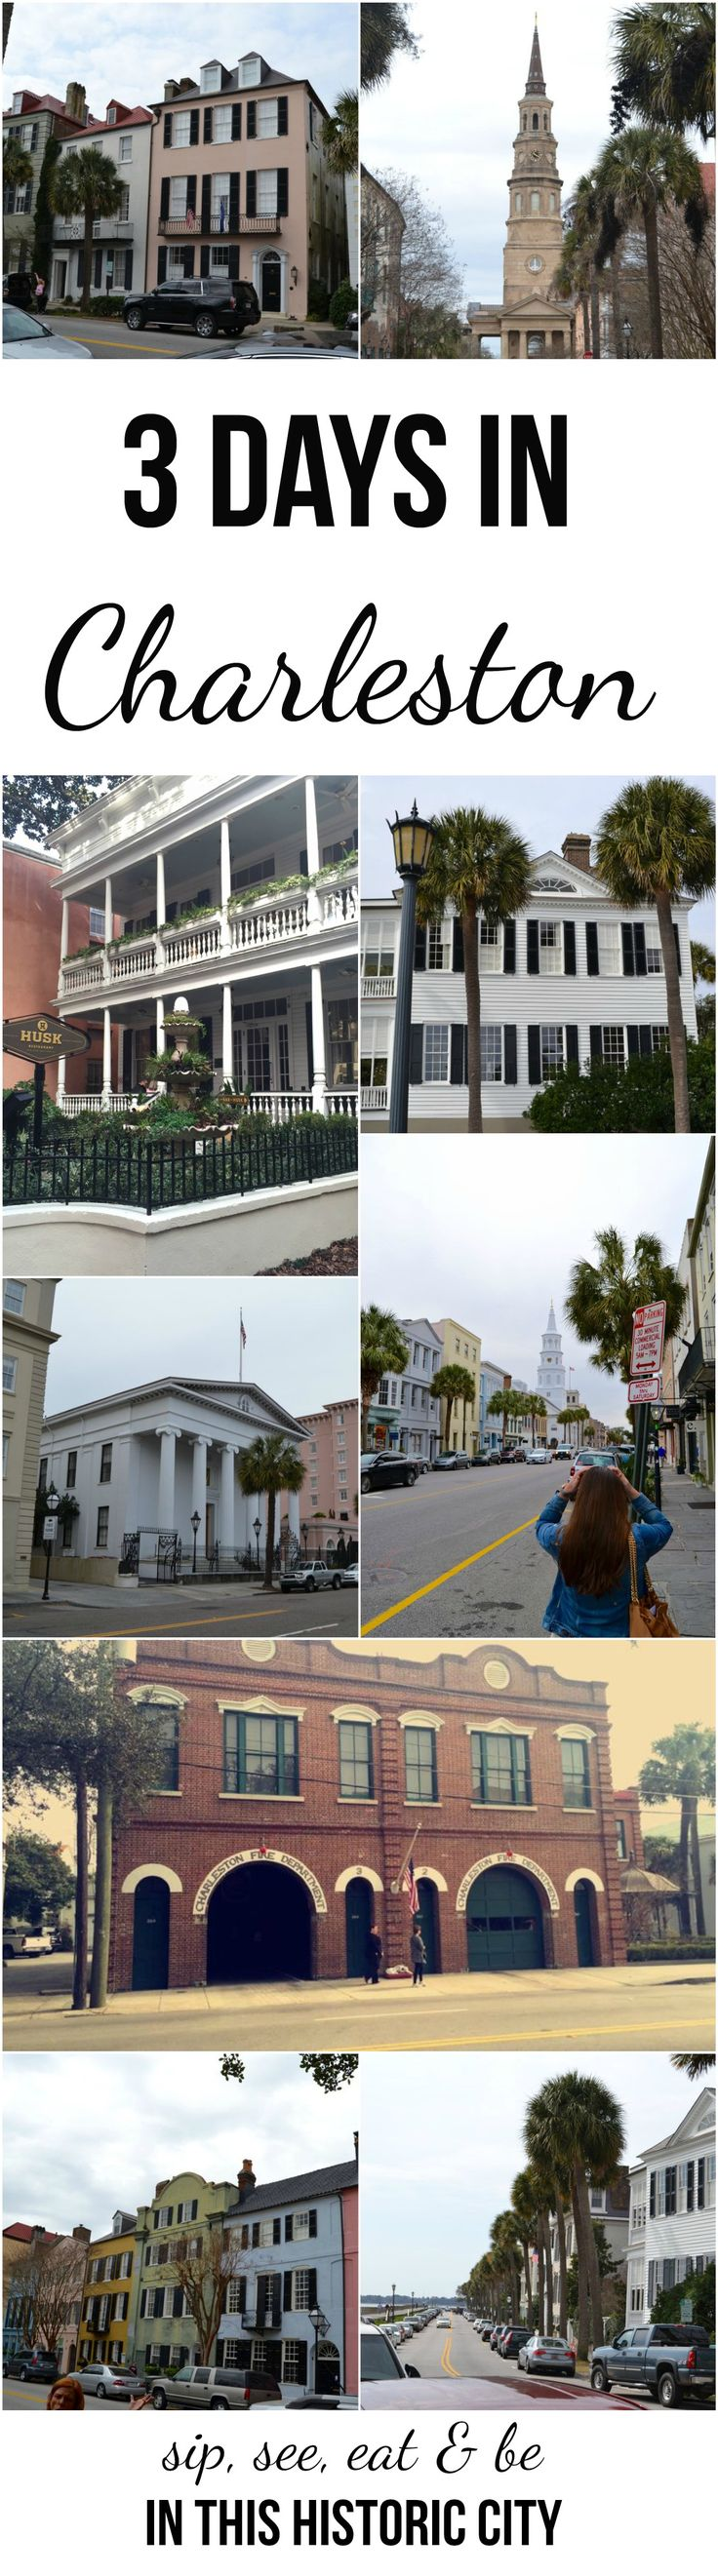 fun-filled weekend in Charleston {restaurants, bars, breweries & tours}